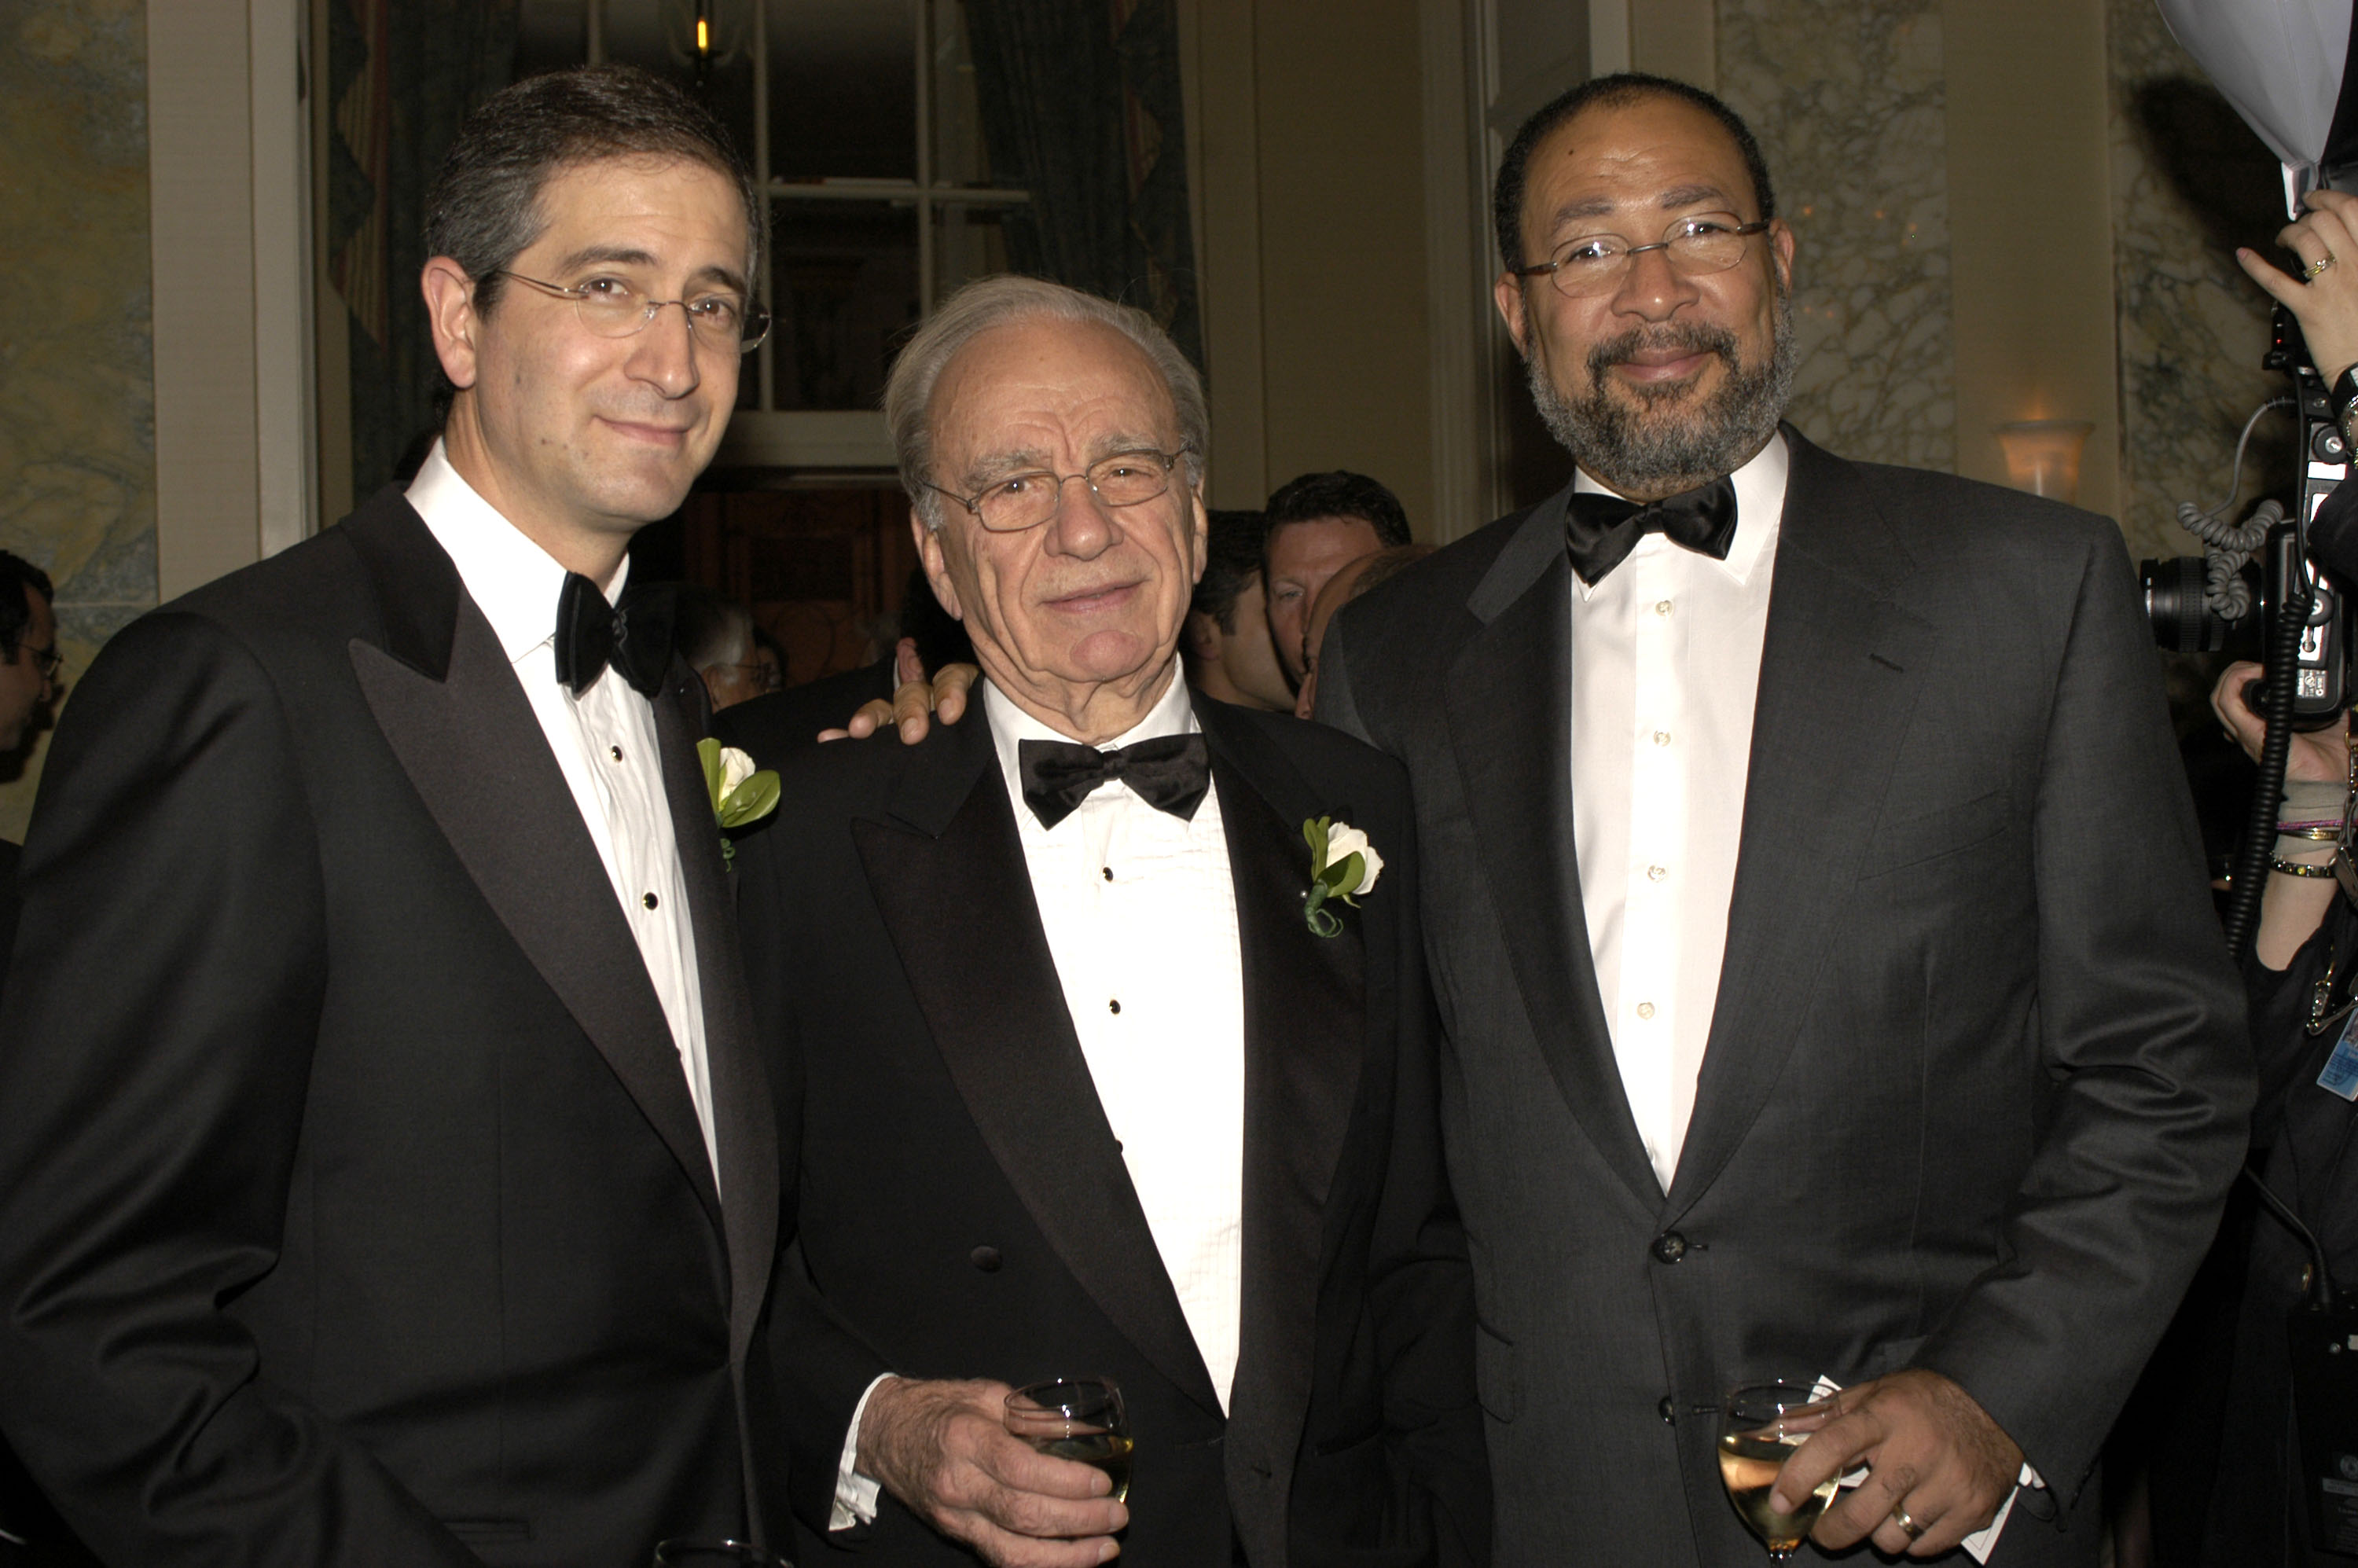 Comcast CEO Brian Roberts, 21st Century Fox exec chairman Rupert Murdoch and former Time Warner CEO Richard Parson, all wearing tuxedos